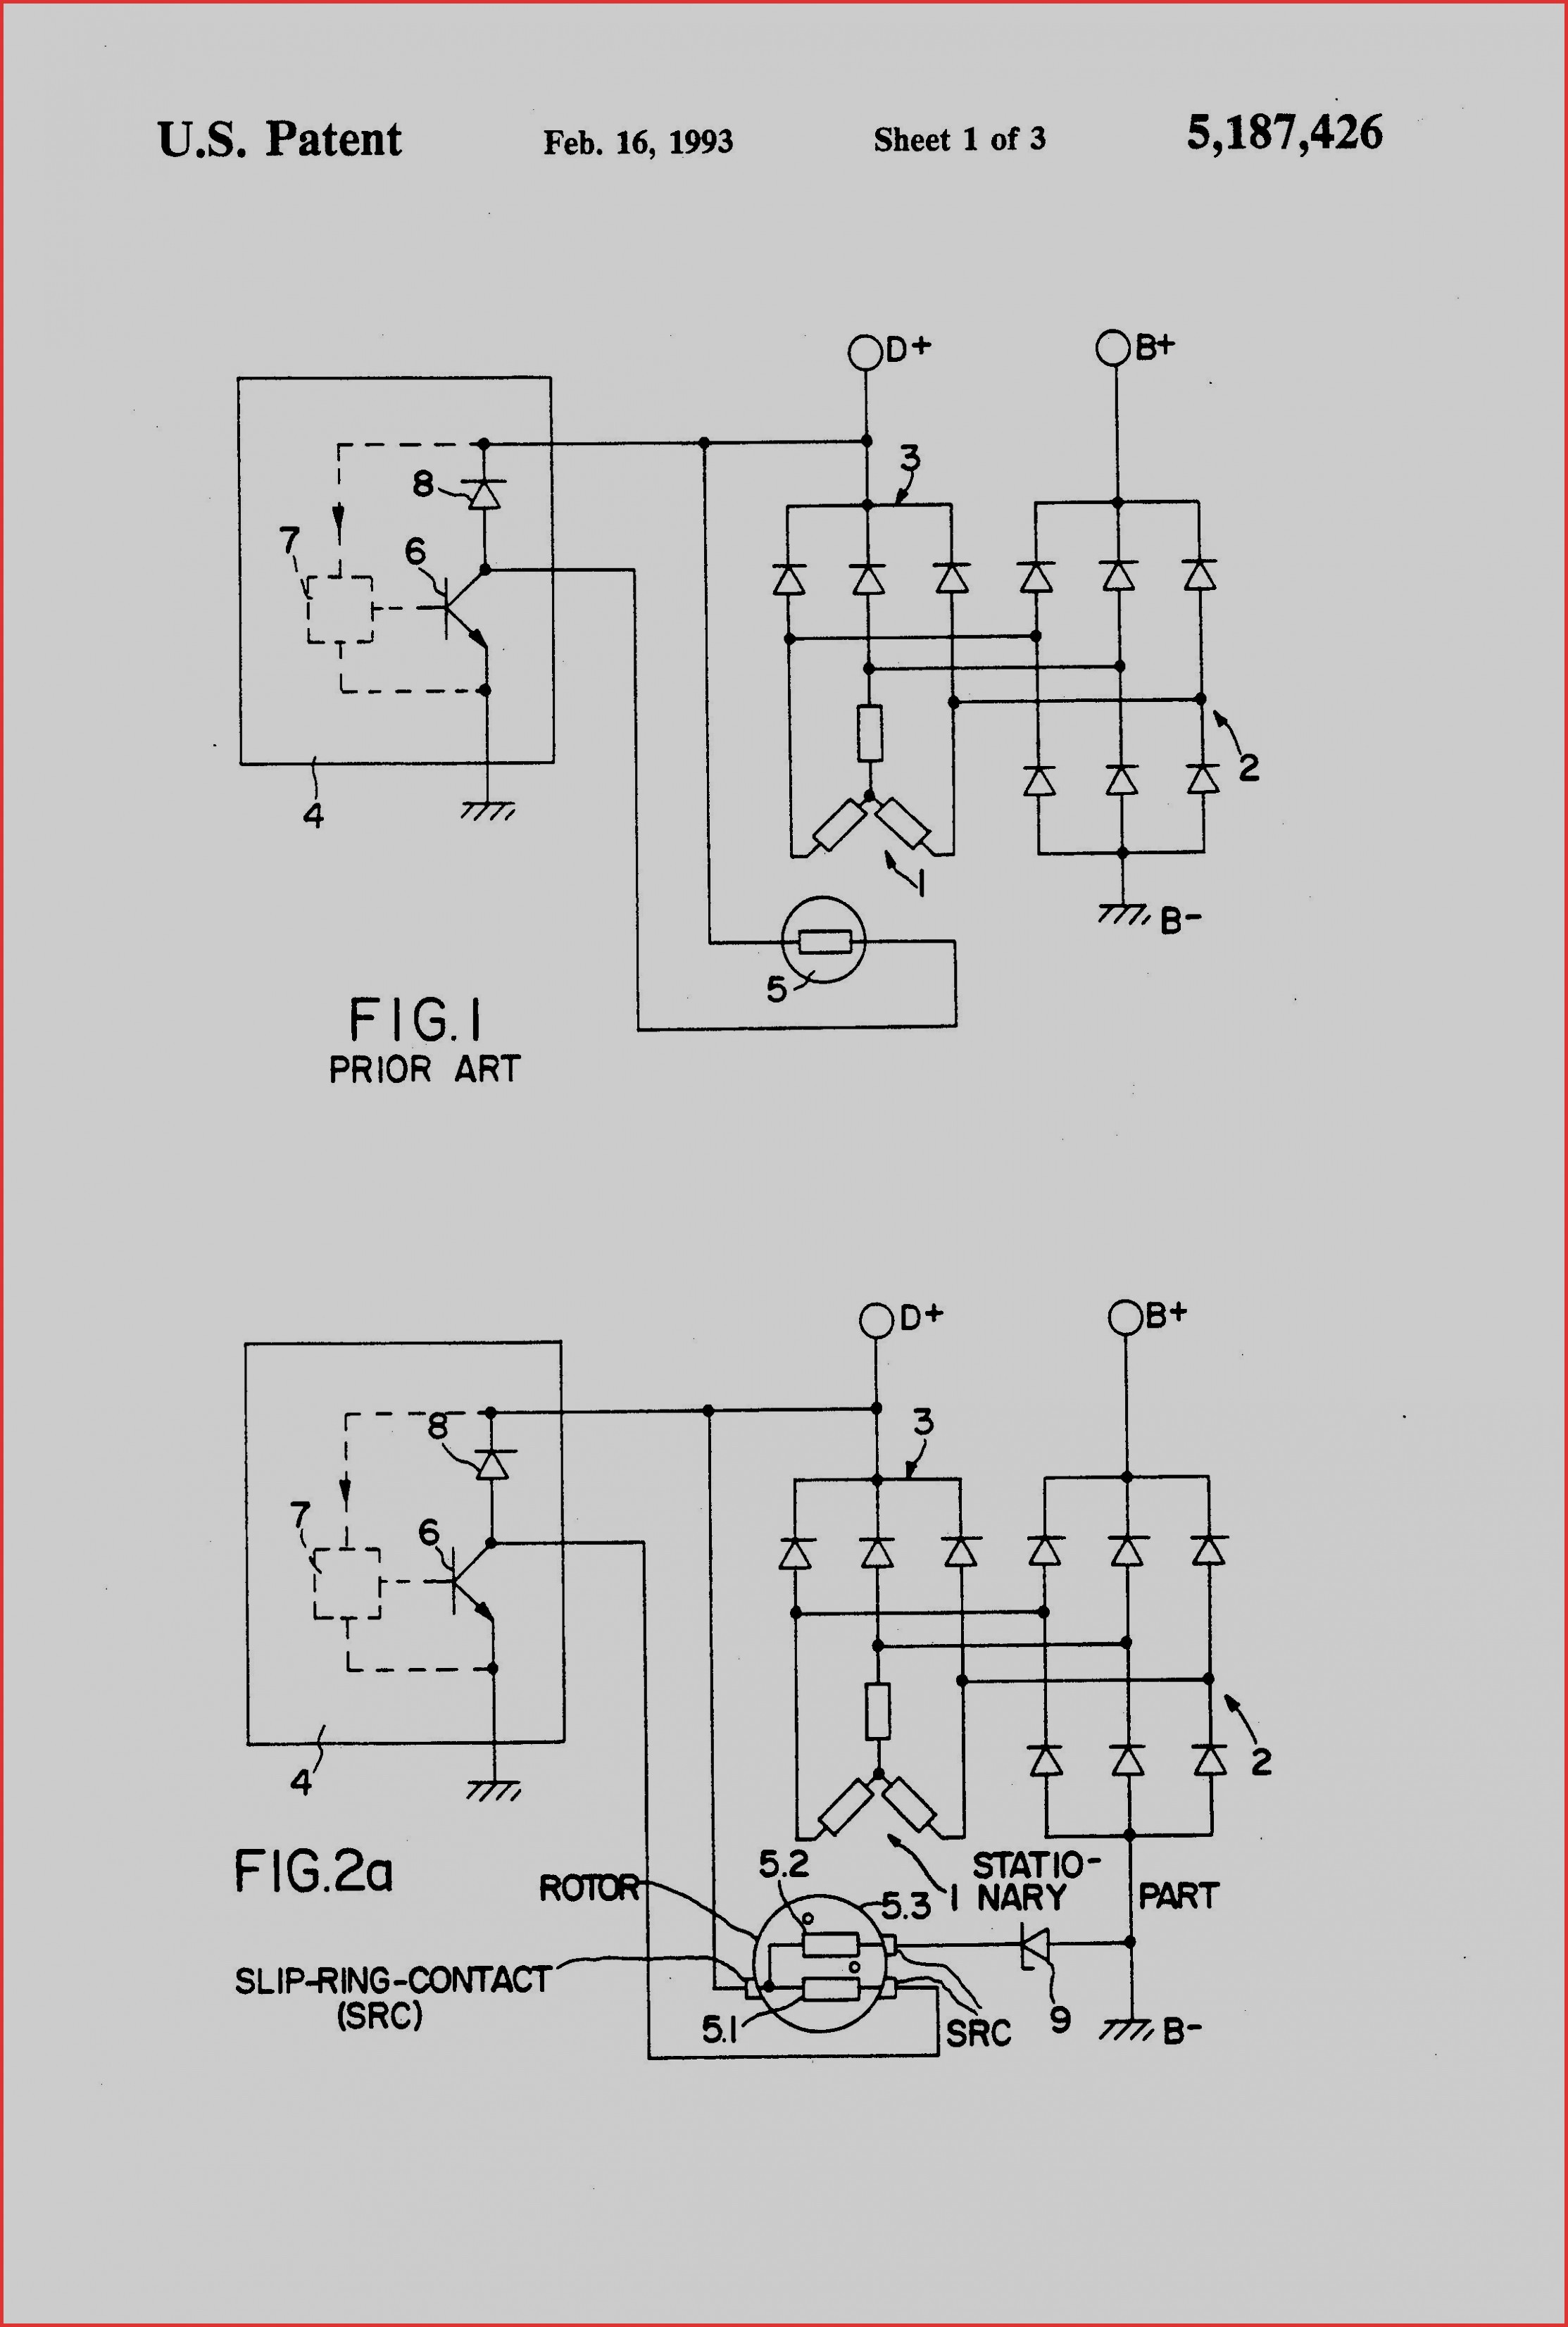 Deutz Engine Parts Diagram Deutz Alternator Wiring Diagram Of Deutz Engine Parts Diagram Deutz Alternator Wiring Diagram